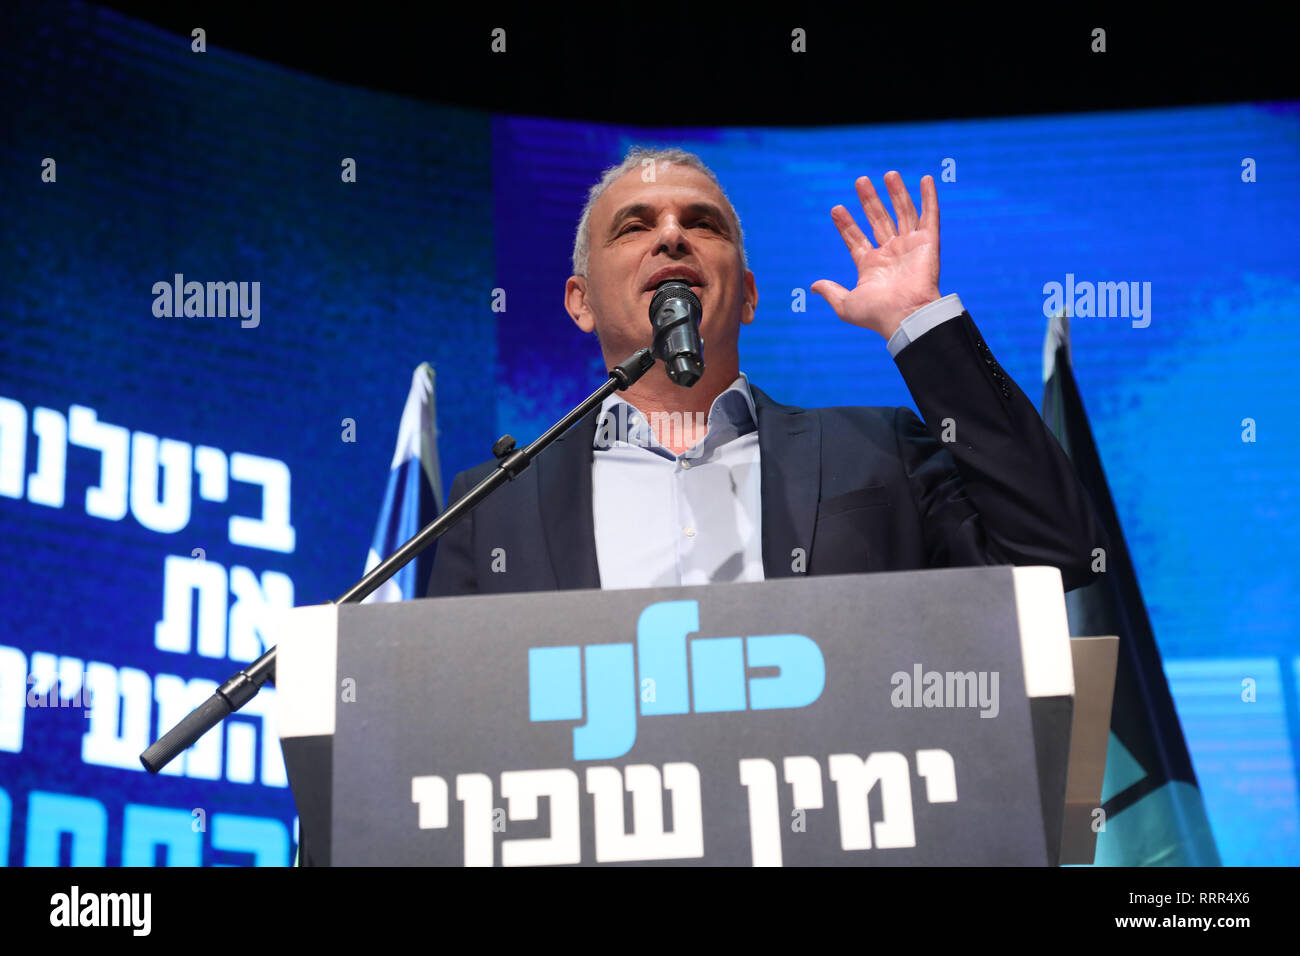 Rishon Lezion, Israel. 26th Feb, 2019. Israeli Finance Minister and head of the Kulanu party Moshe Kahlon speaks at a conference of the Kulanu party, presenting the list of candidates, in Rishon Lezion, Israel, on Feb. 26, 2019. Credit: JINI/Gideon Markowicz/Xinhua/Alamy Live News - Stock Image